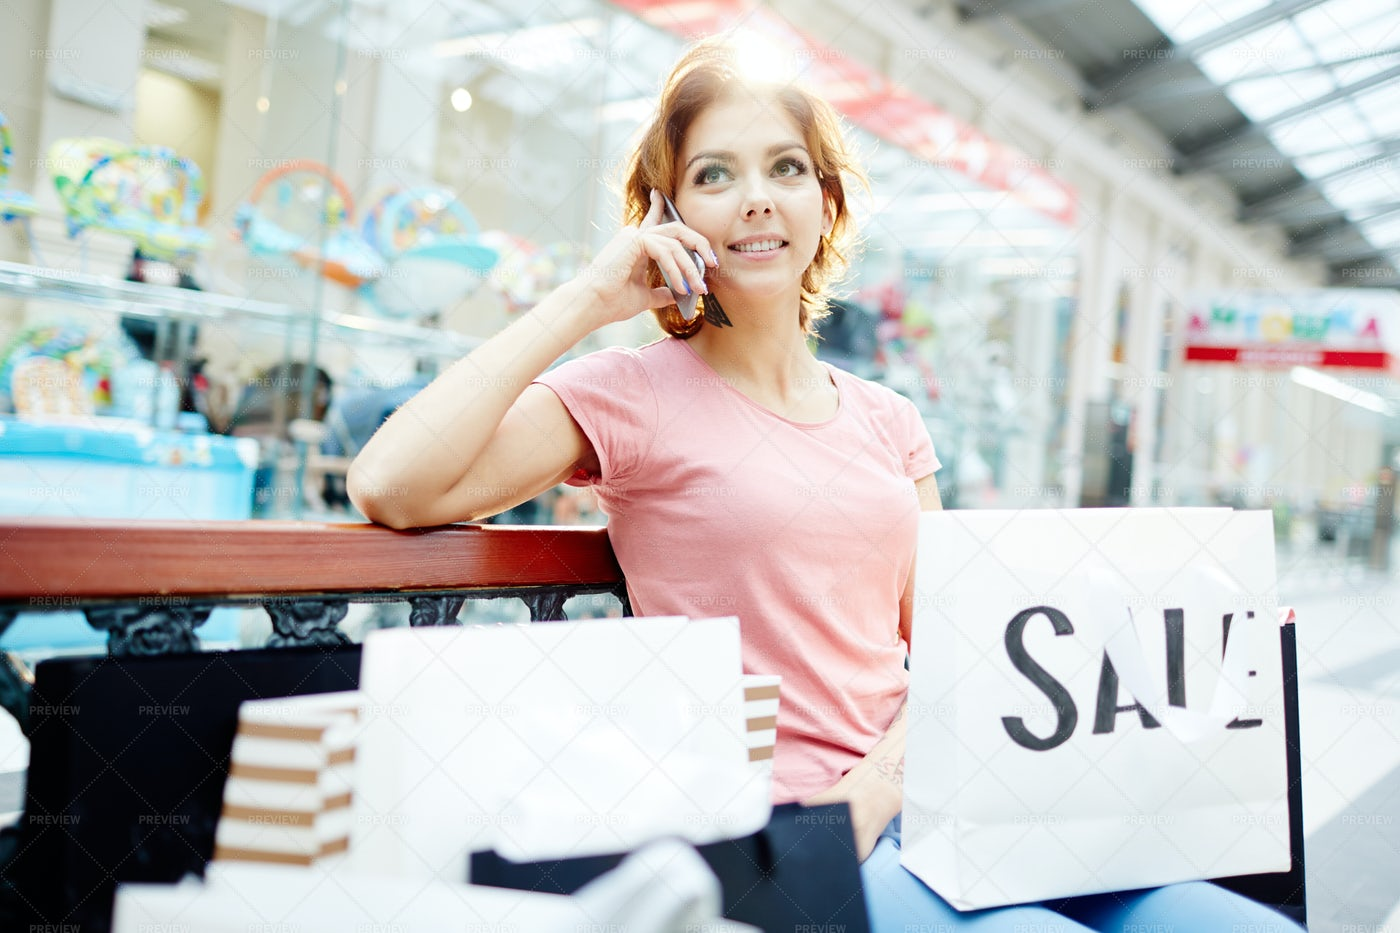 Call In The Mall: Stock Photos